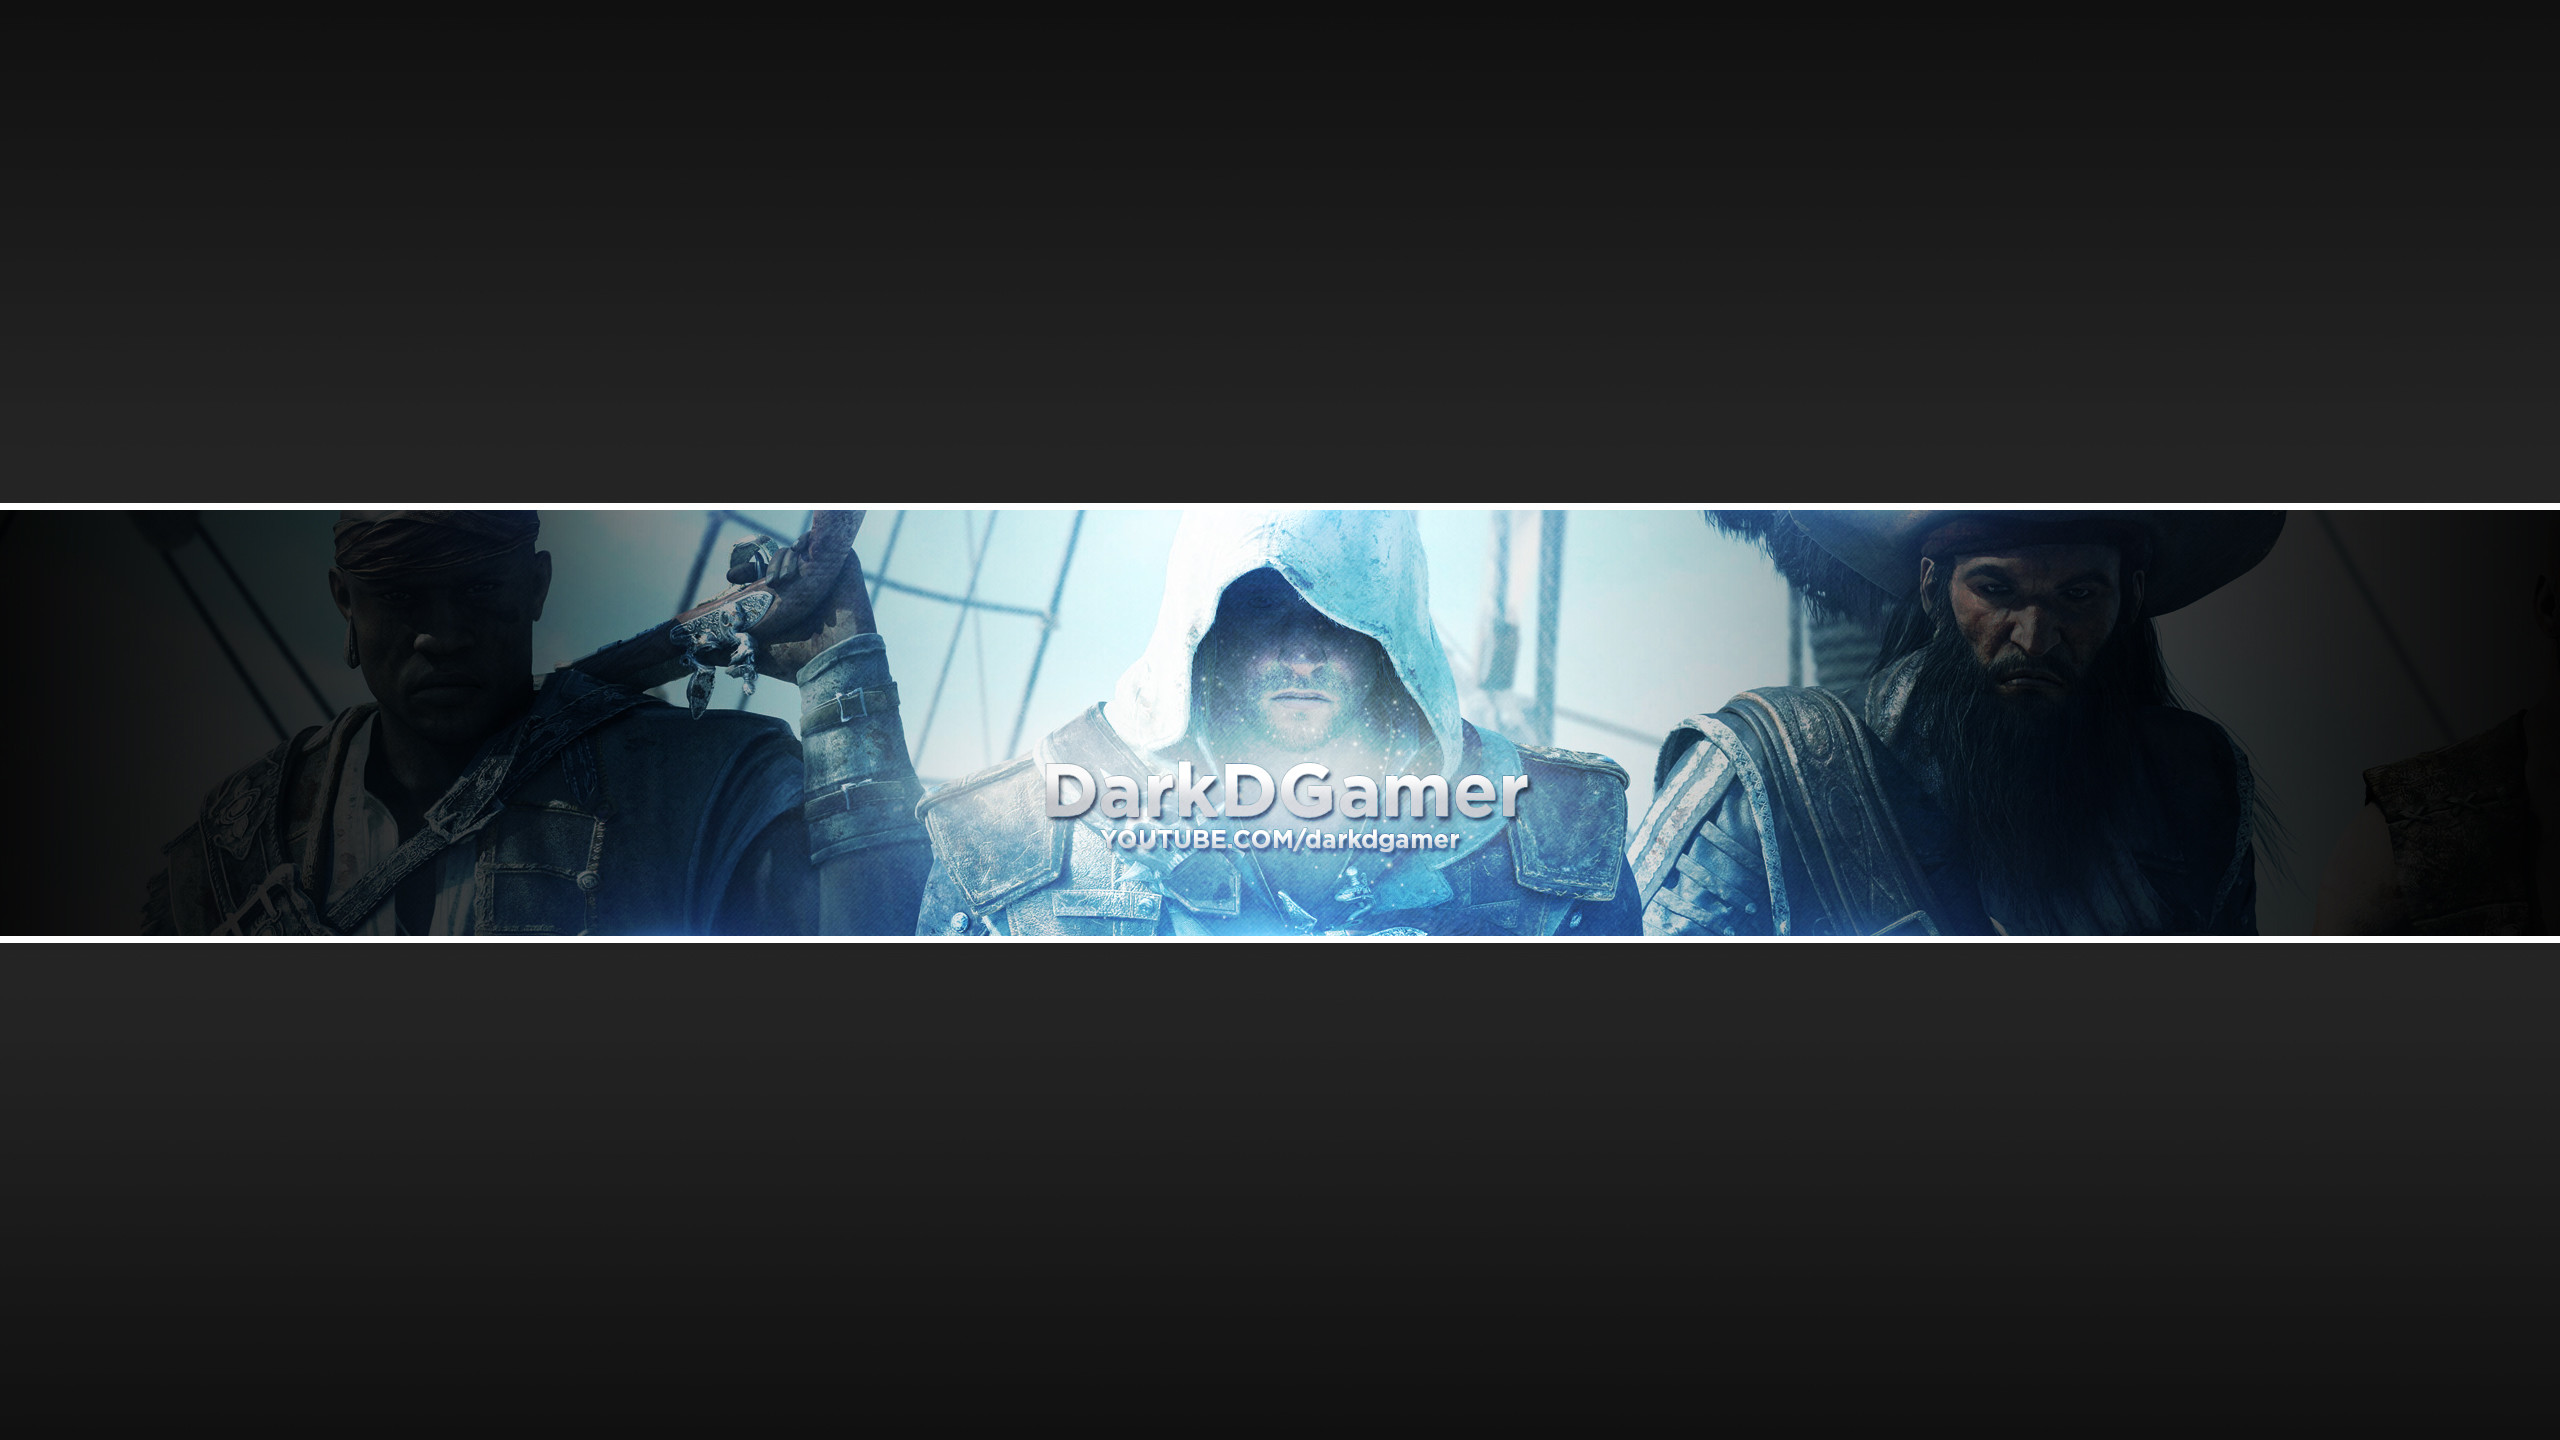 Assassin's creed YouTube banner